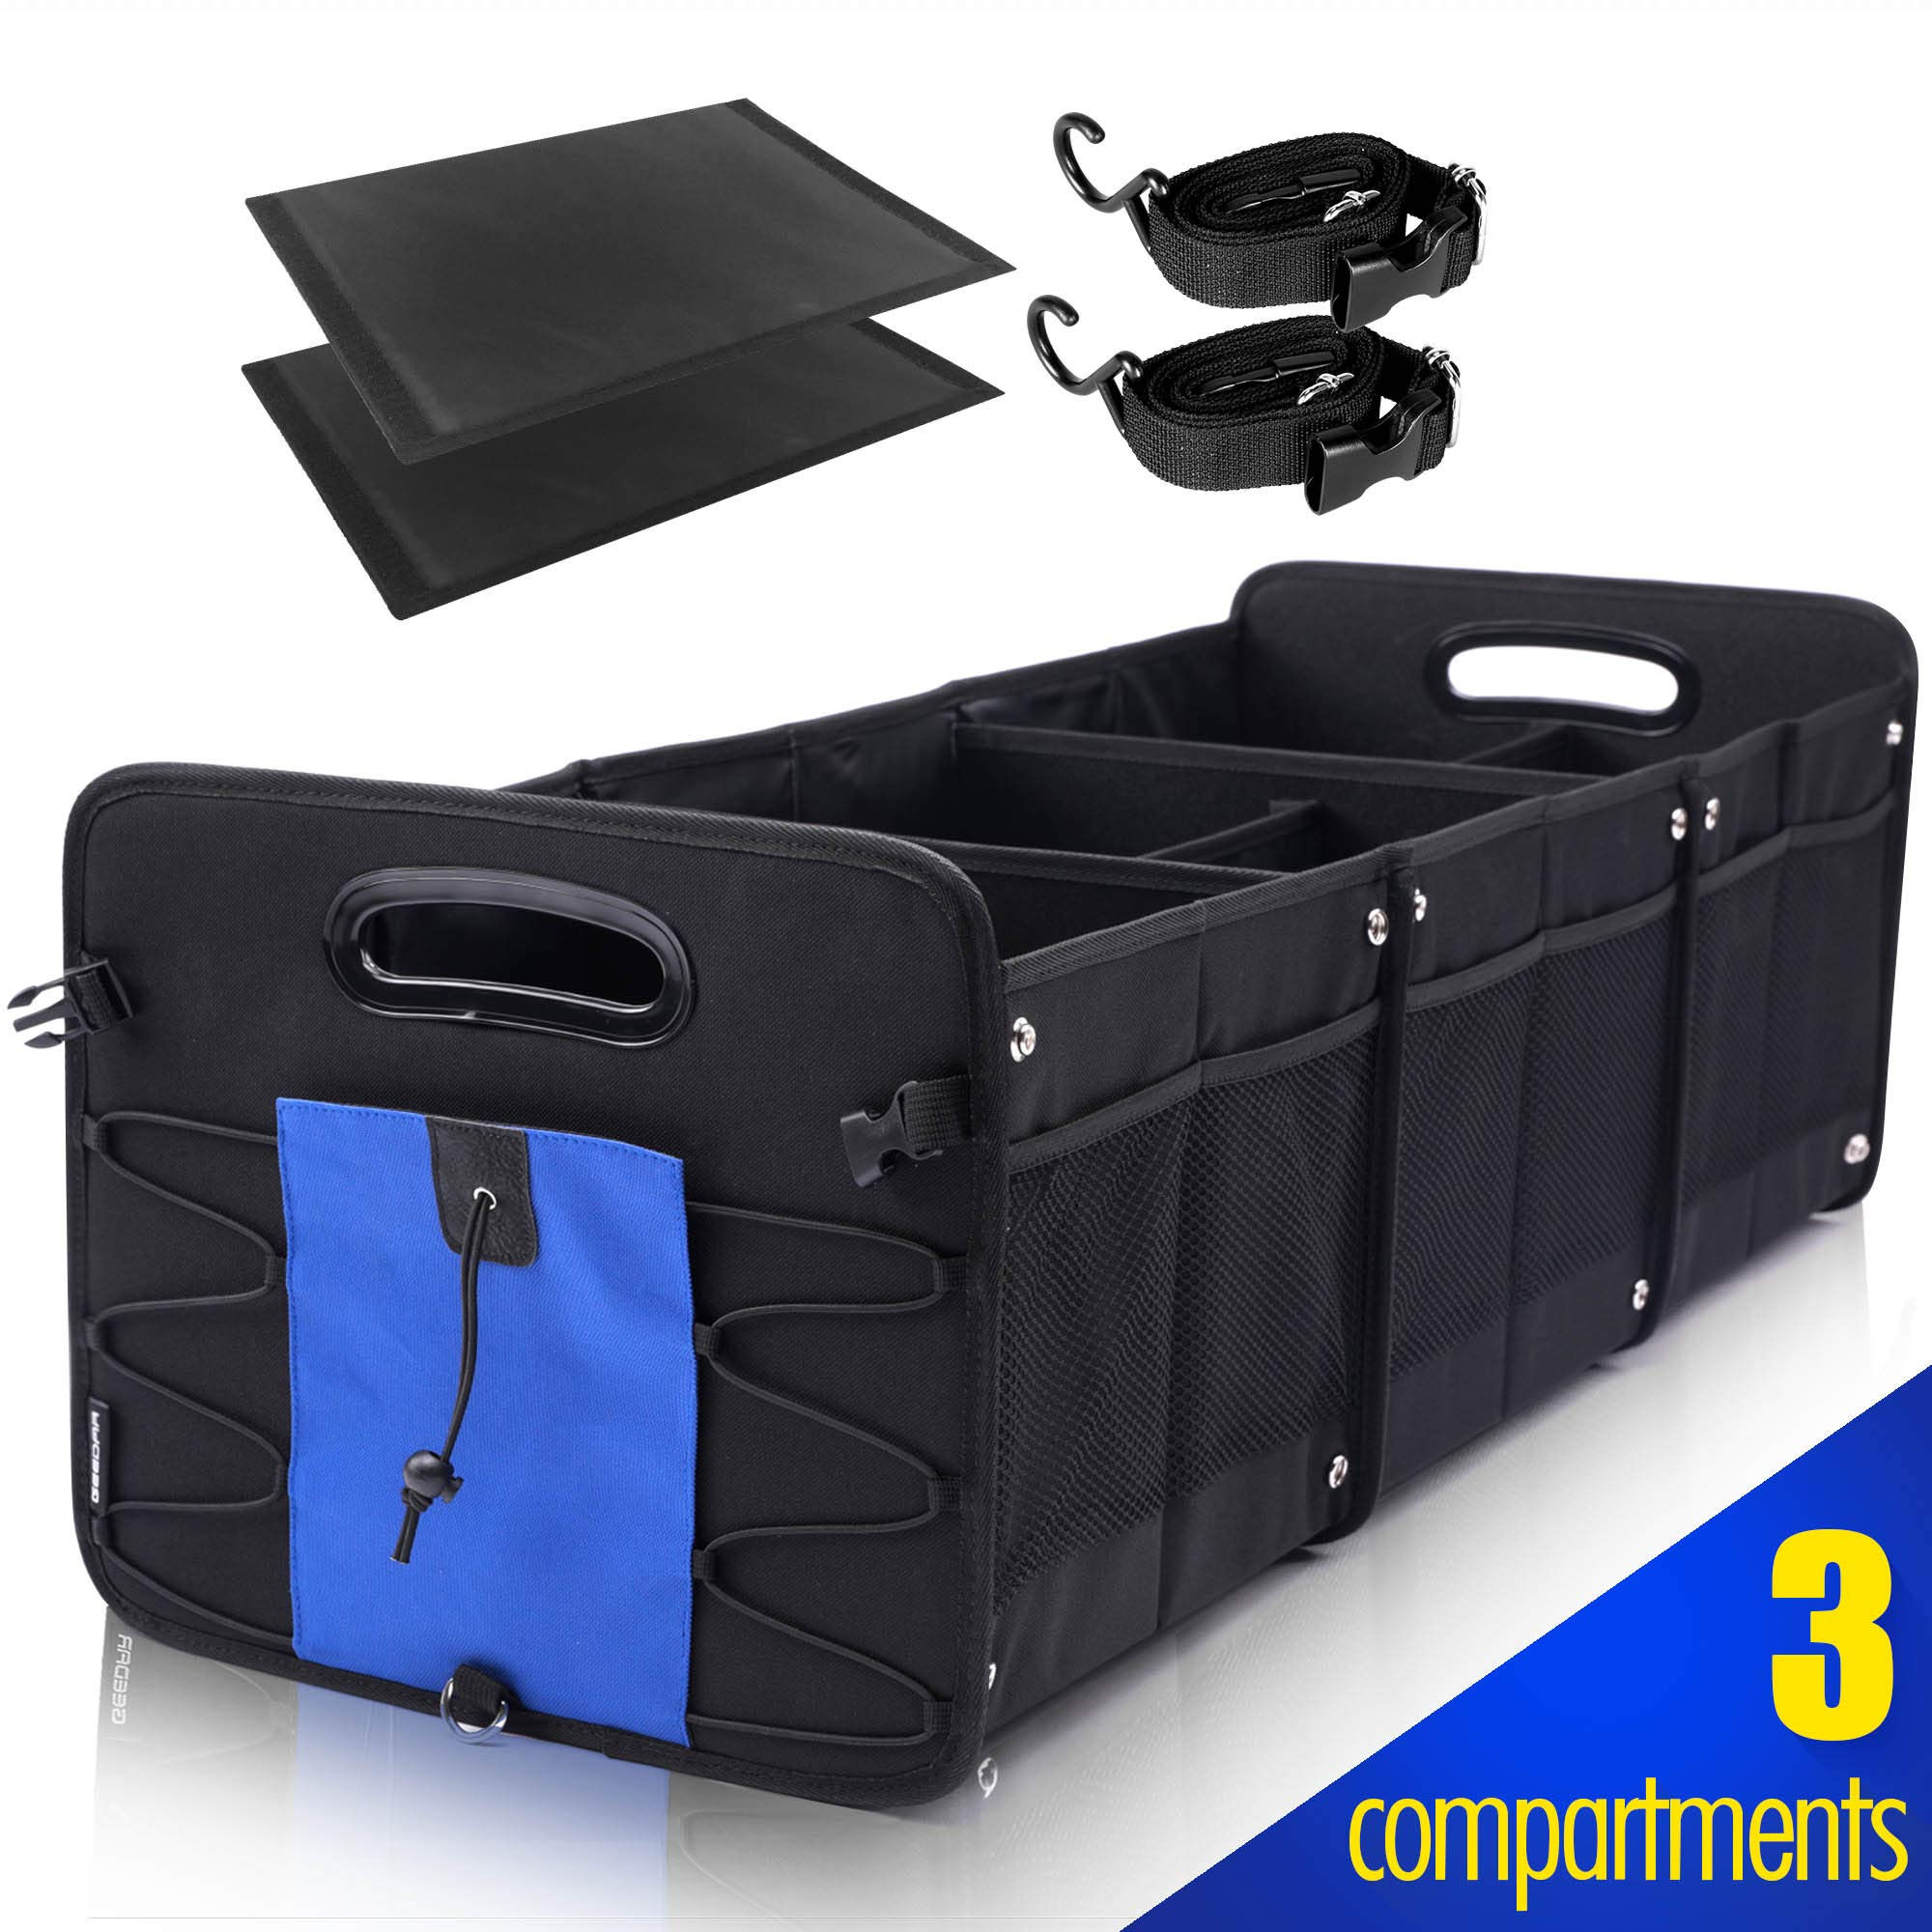 GEEDAR Trunk Organizer for Car SUV Trunk Organizers and Storage [3 Large Compartments] Collapsible Portable Non-Slip Bottom with Tie Down Straps (Blue) by GEEDAR